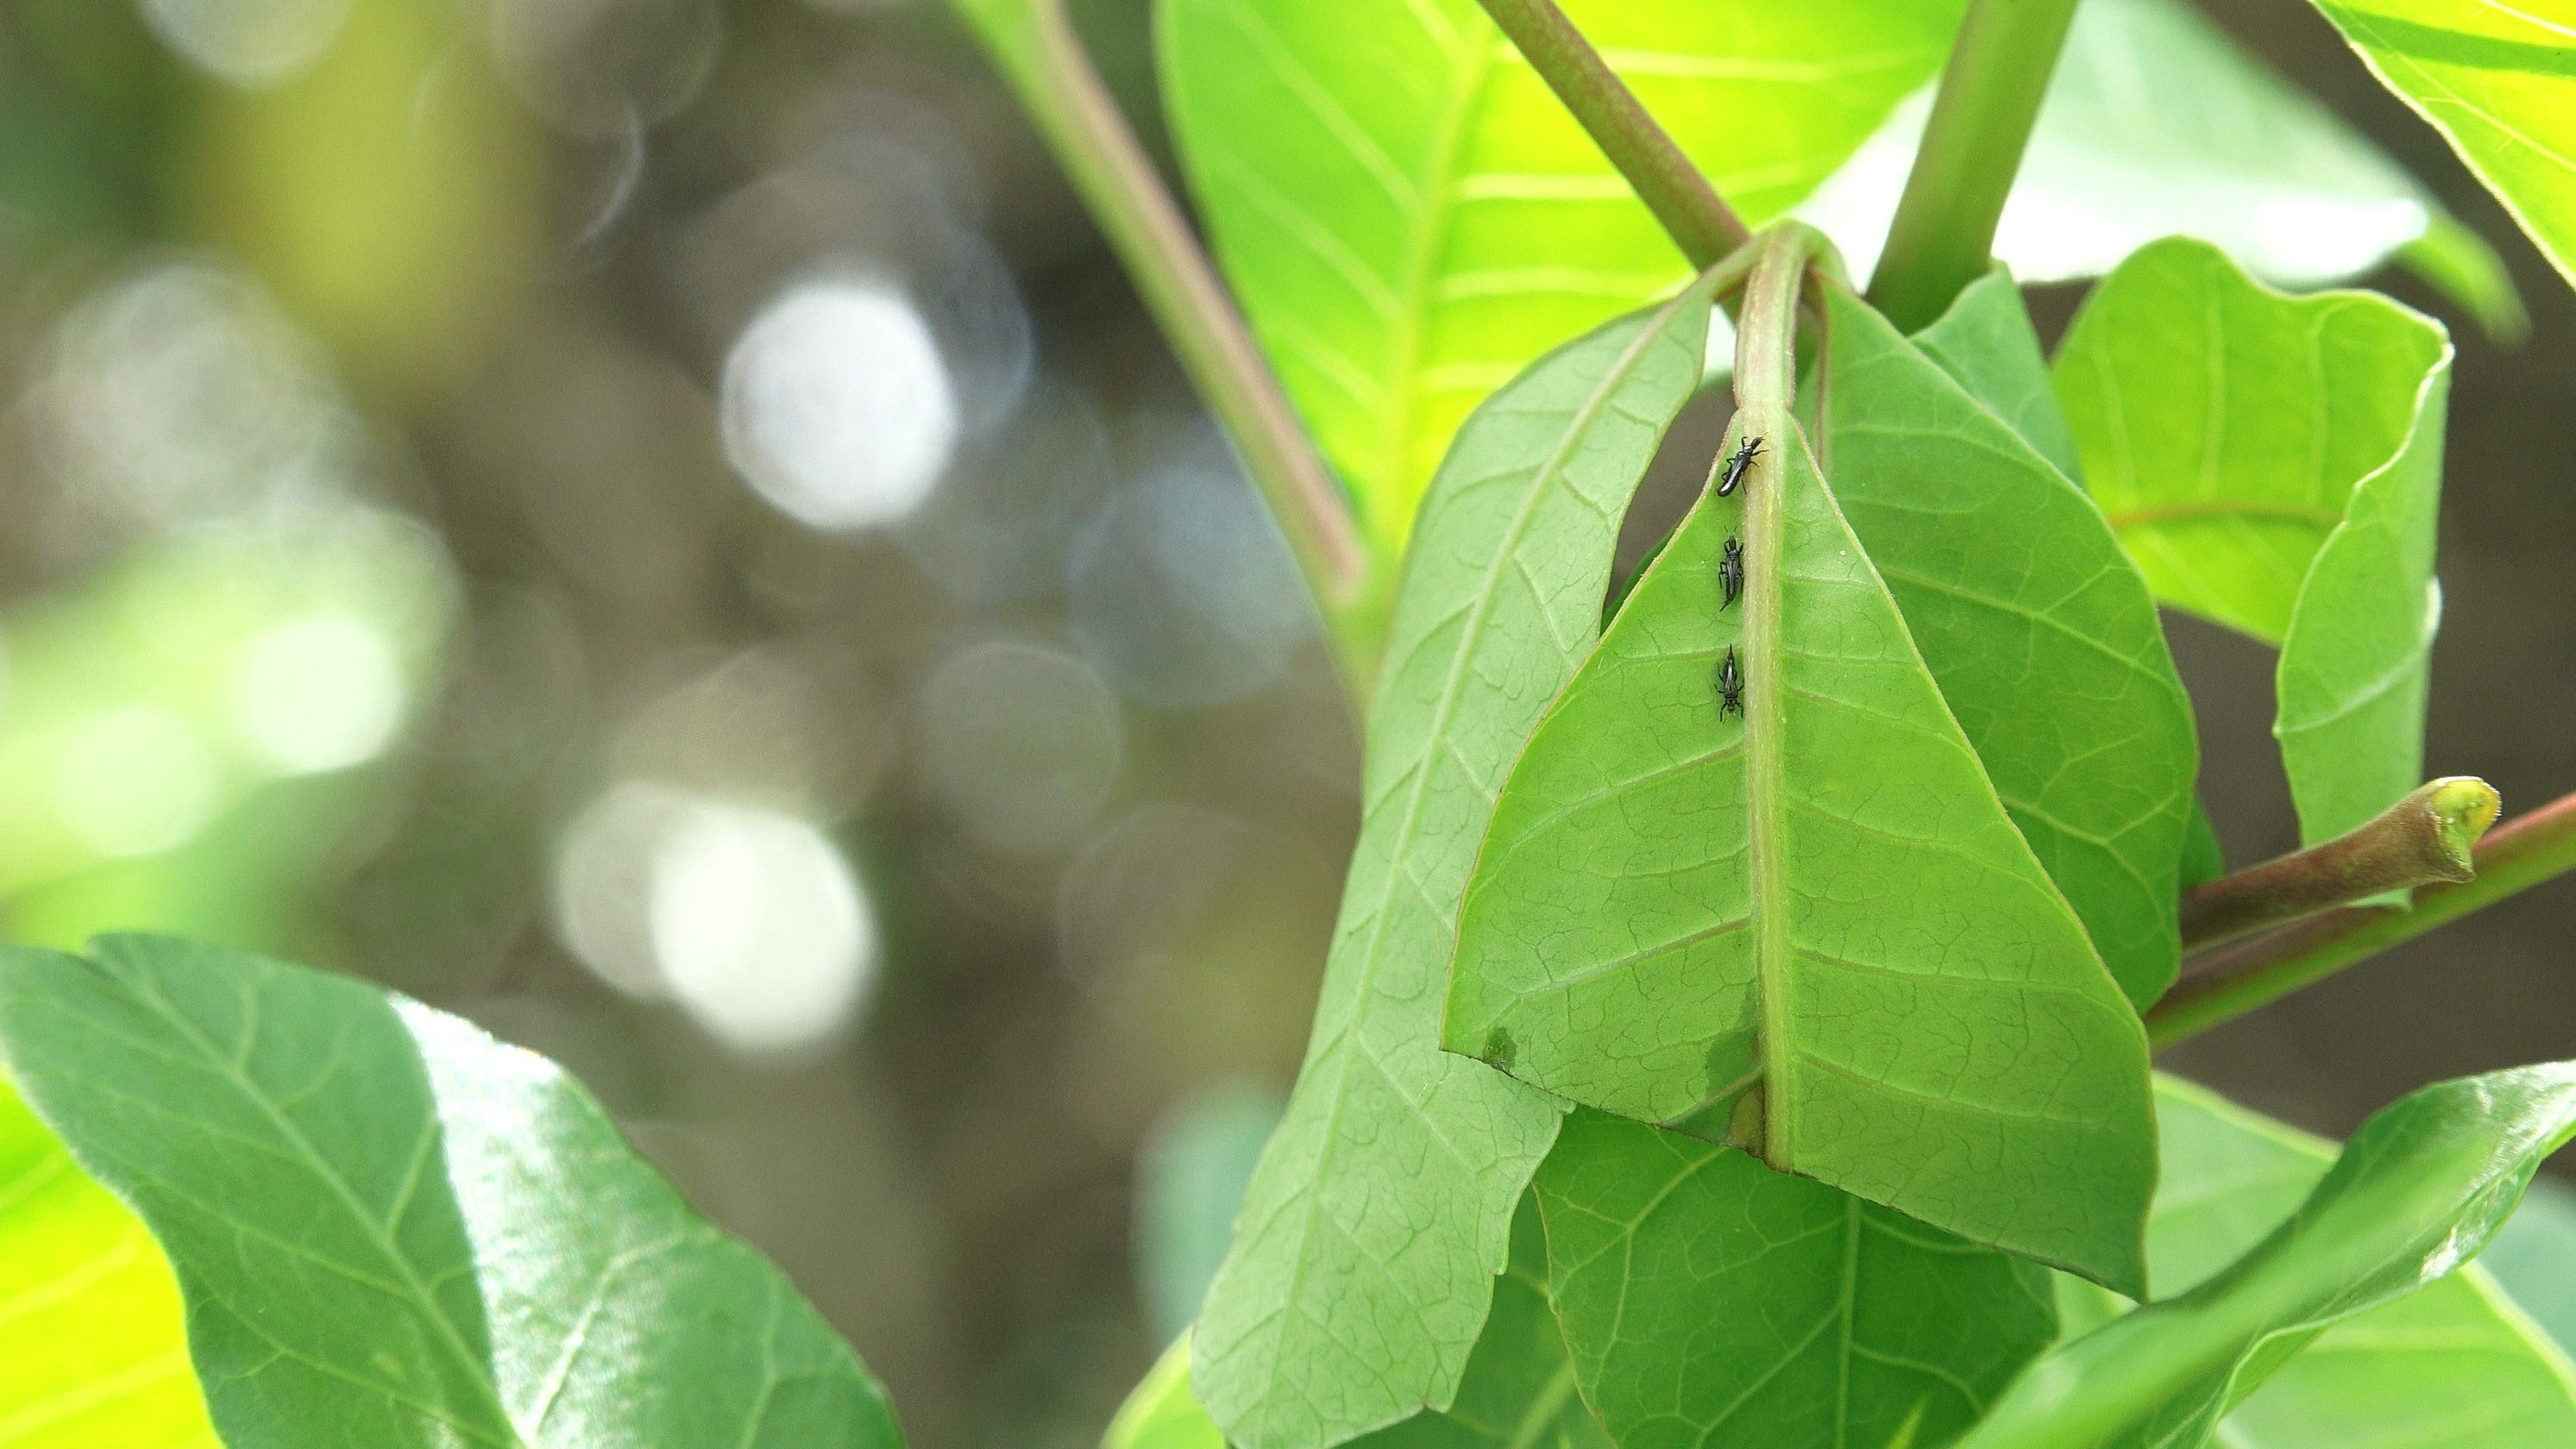 Insect army deployed to fight invasive Brazilian pepper